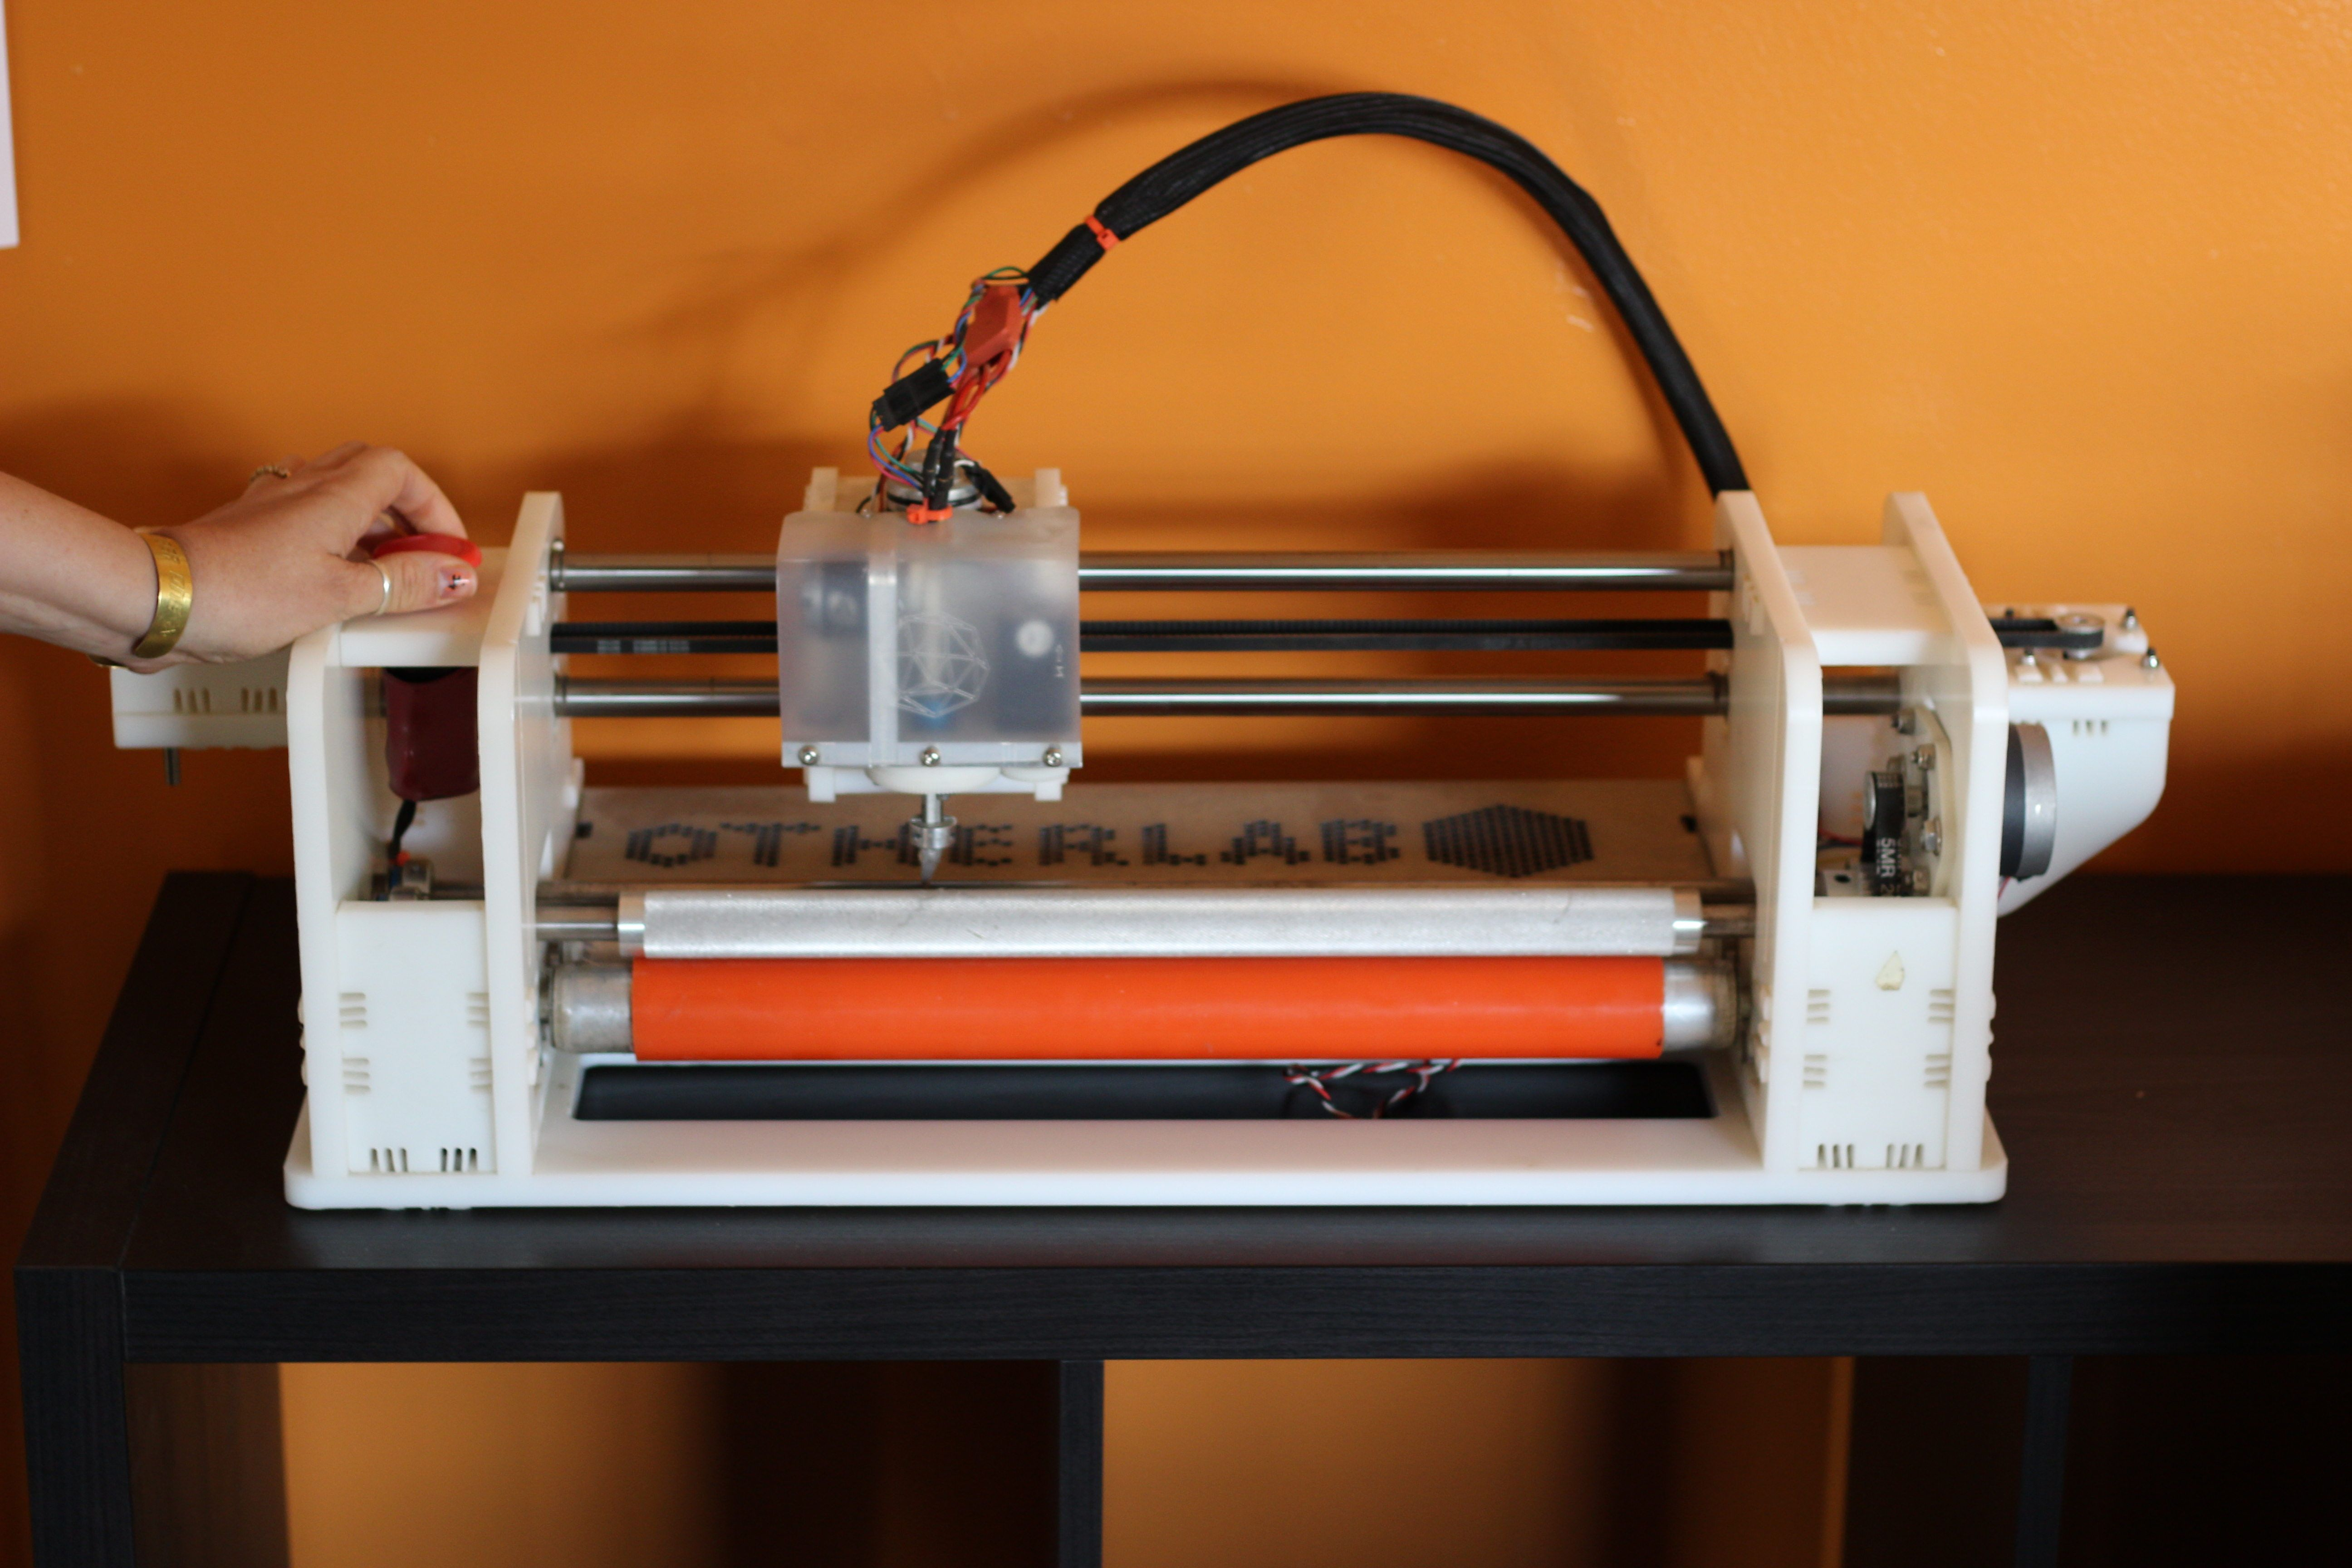 The Othermill Is Something Else | Hackaday